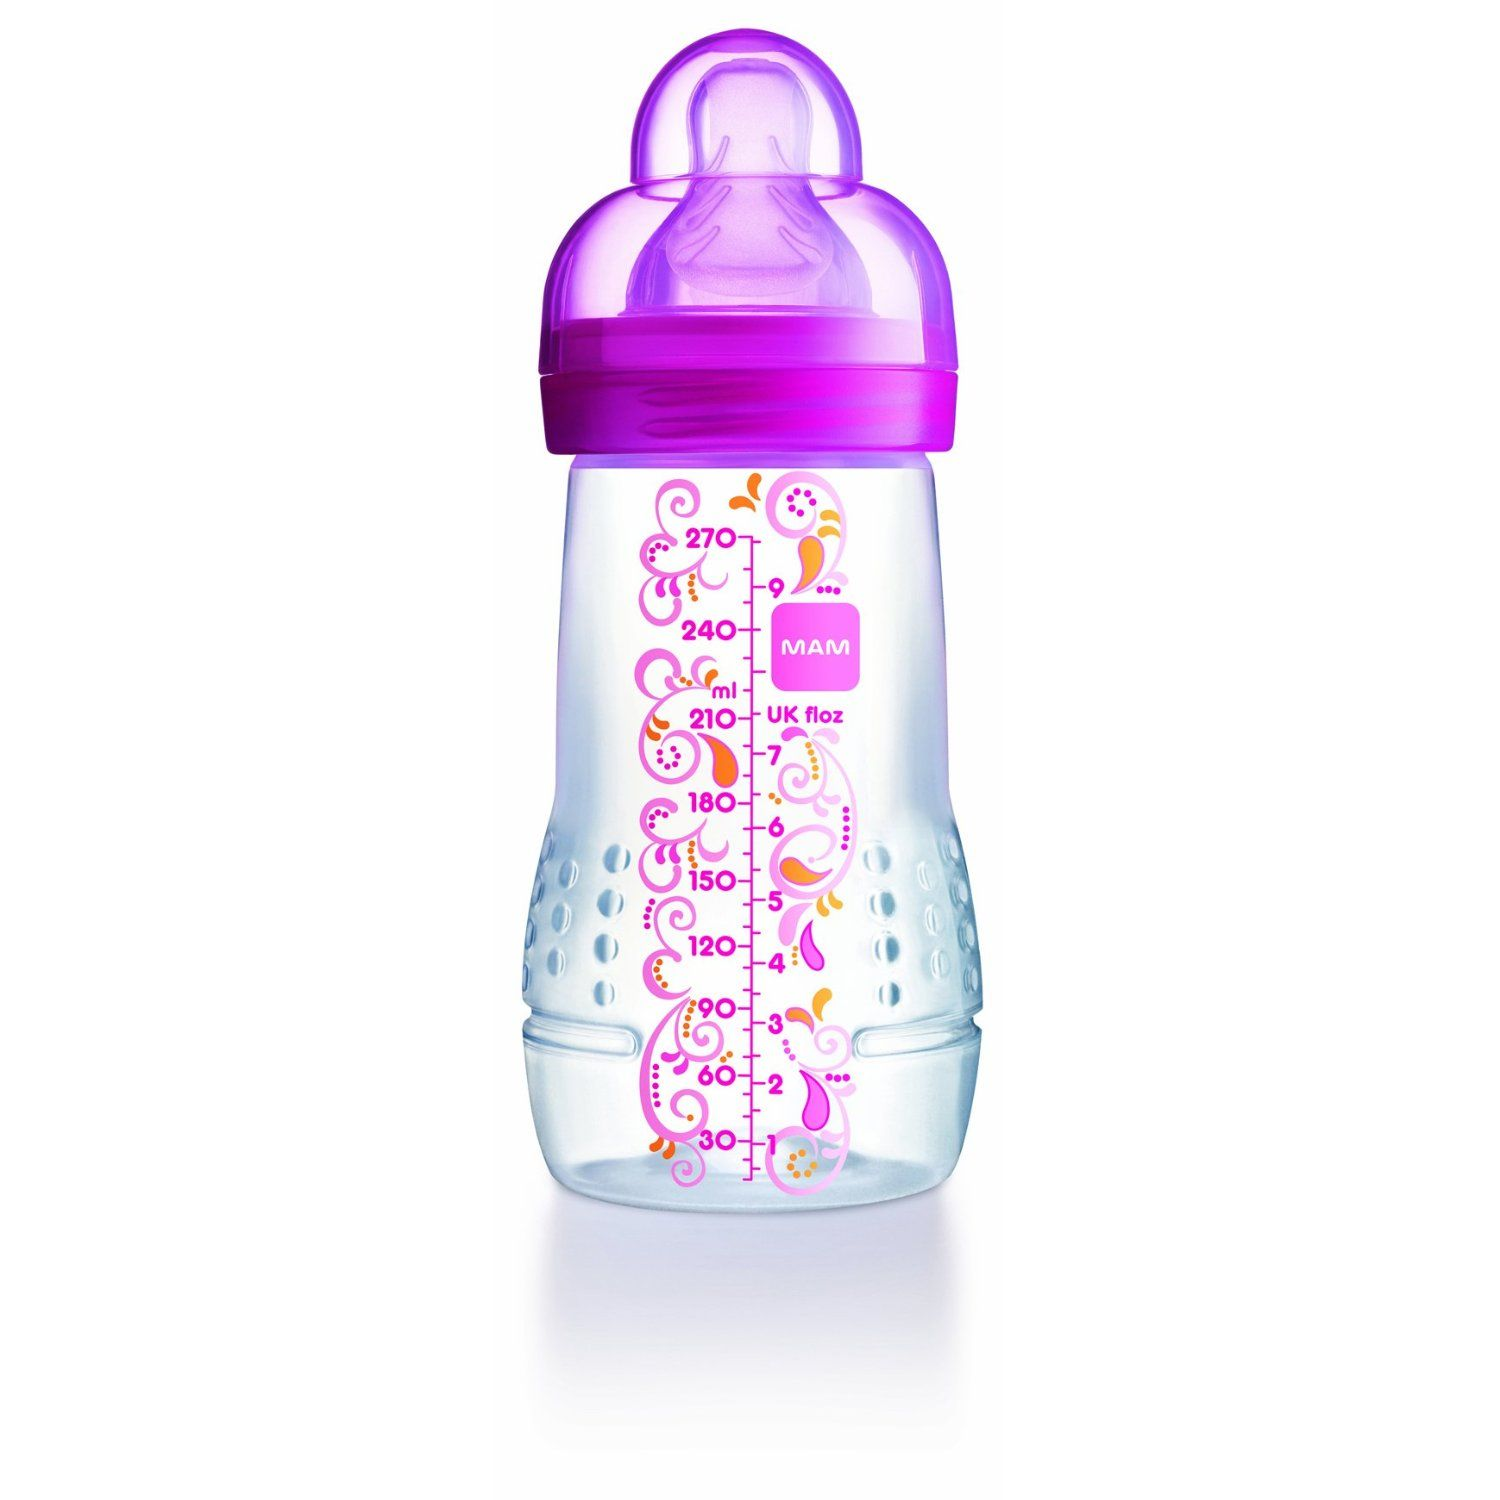 Mam Baby Bottles 11 Oz Candy Pink Ornament Design With Images Baby Bottles Toddler Bottles Pack Baby